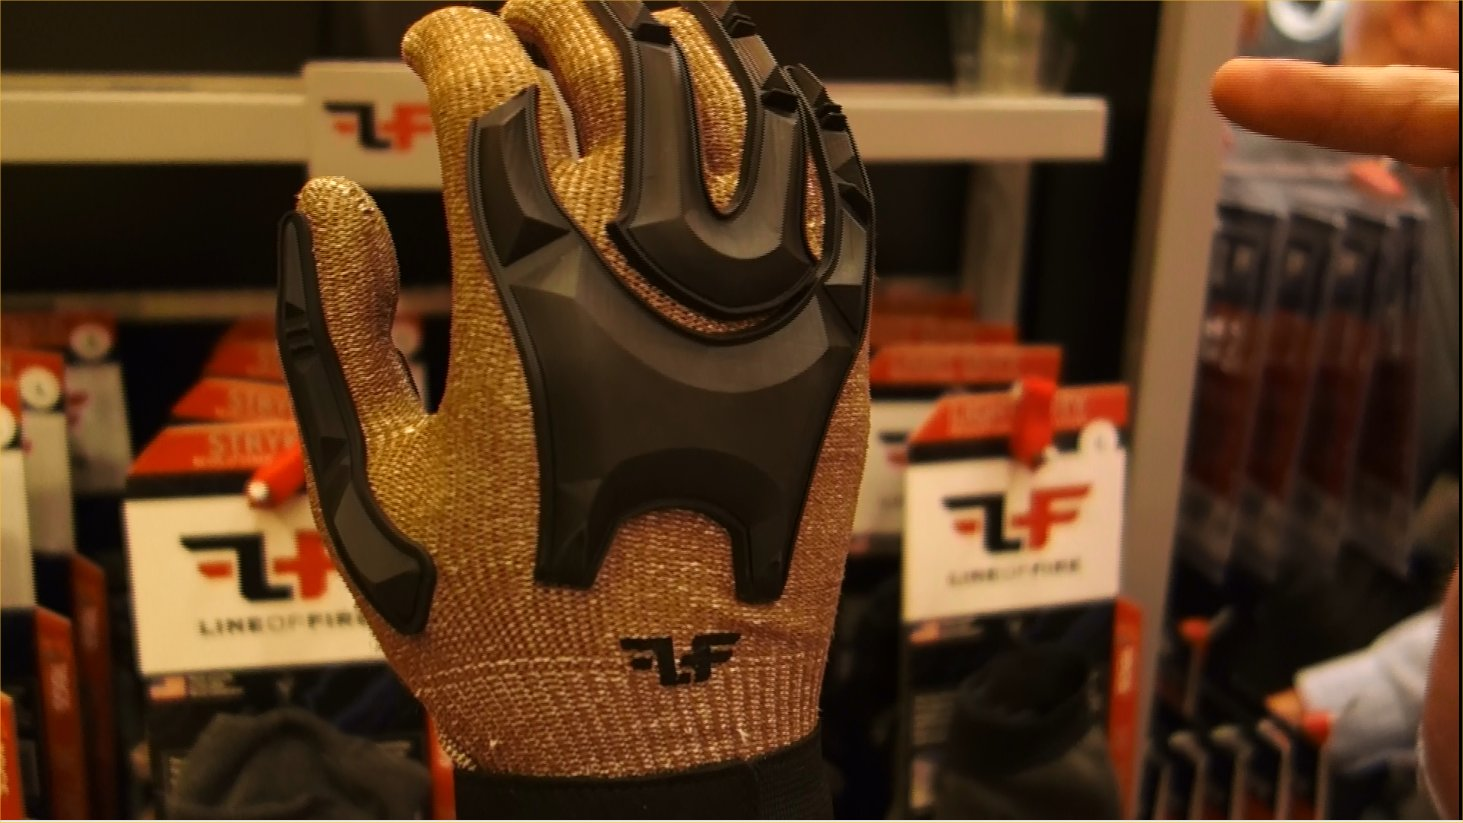 Line of Fire LOF Phantom Dyneema Cut Resistant Tactical Glove with Hard Knuckles and Silicone Print Gripping Material Tactical Gloves Combat Gloves Brian Miller SHOT Show 2013 David Crane DefenseReview.com DR 4 Line of Fire LOF Phantom Combat/Tactical Glove: Seamless Dyneema Cut Resistant Combat/Tactical Shooting Gloves with Hard Knuckles and Fingers and Silicone Gripping Material (Video!)